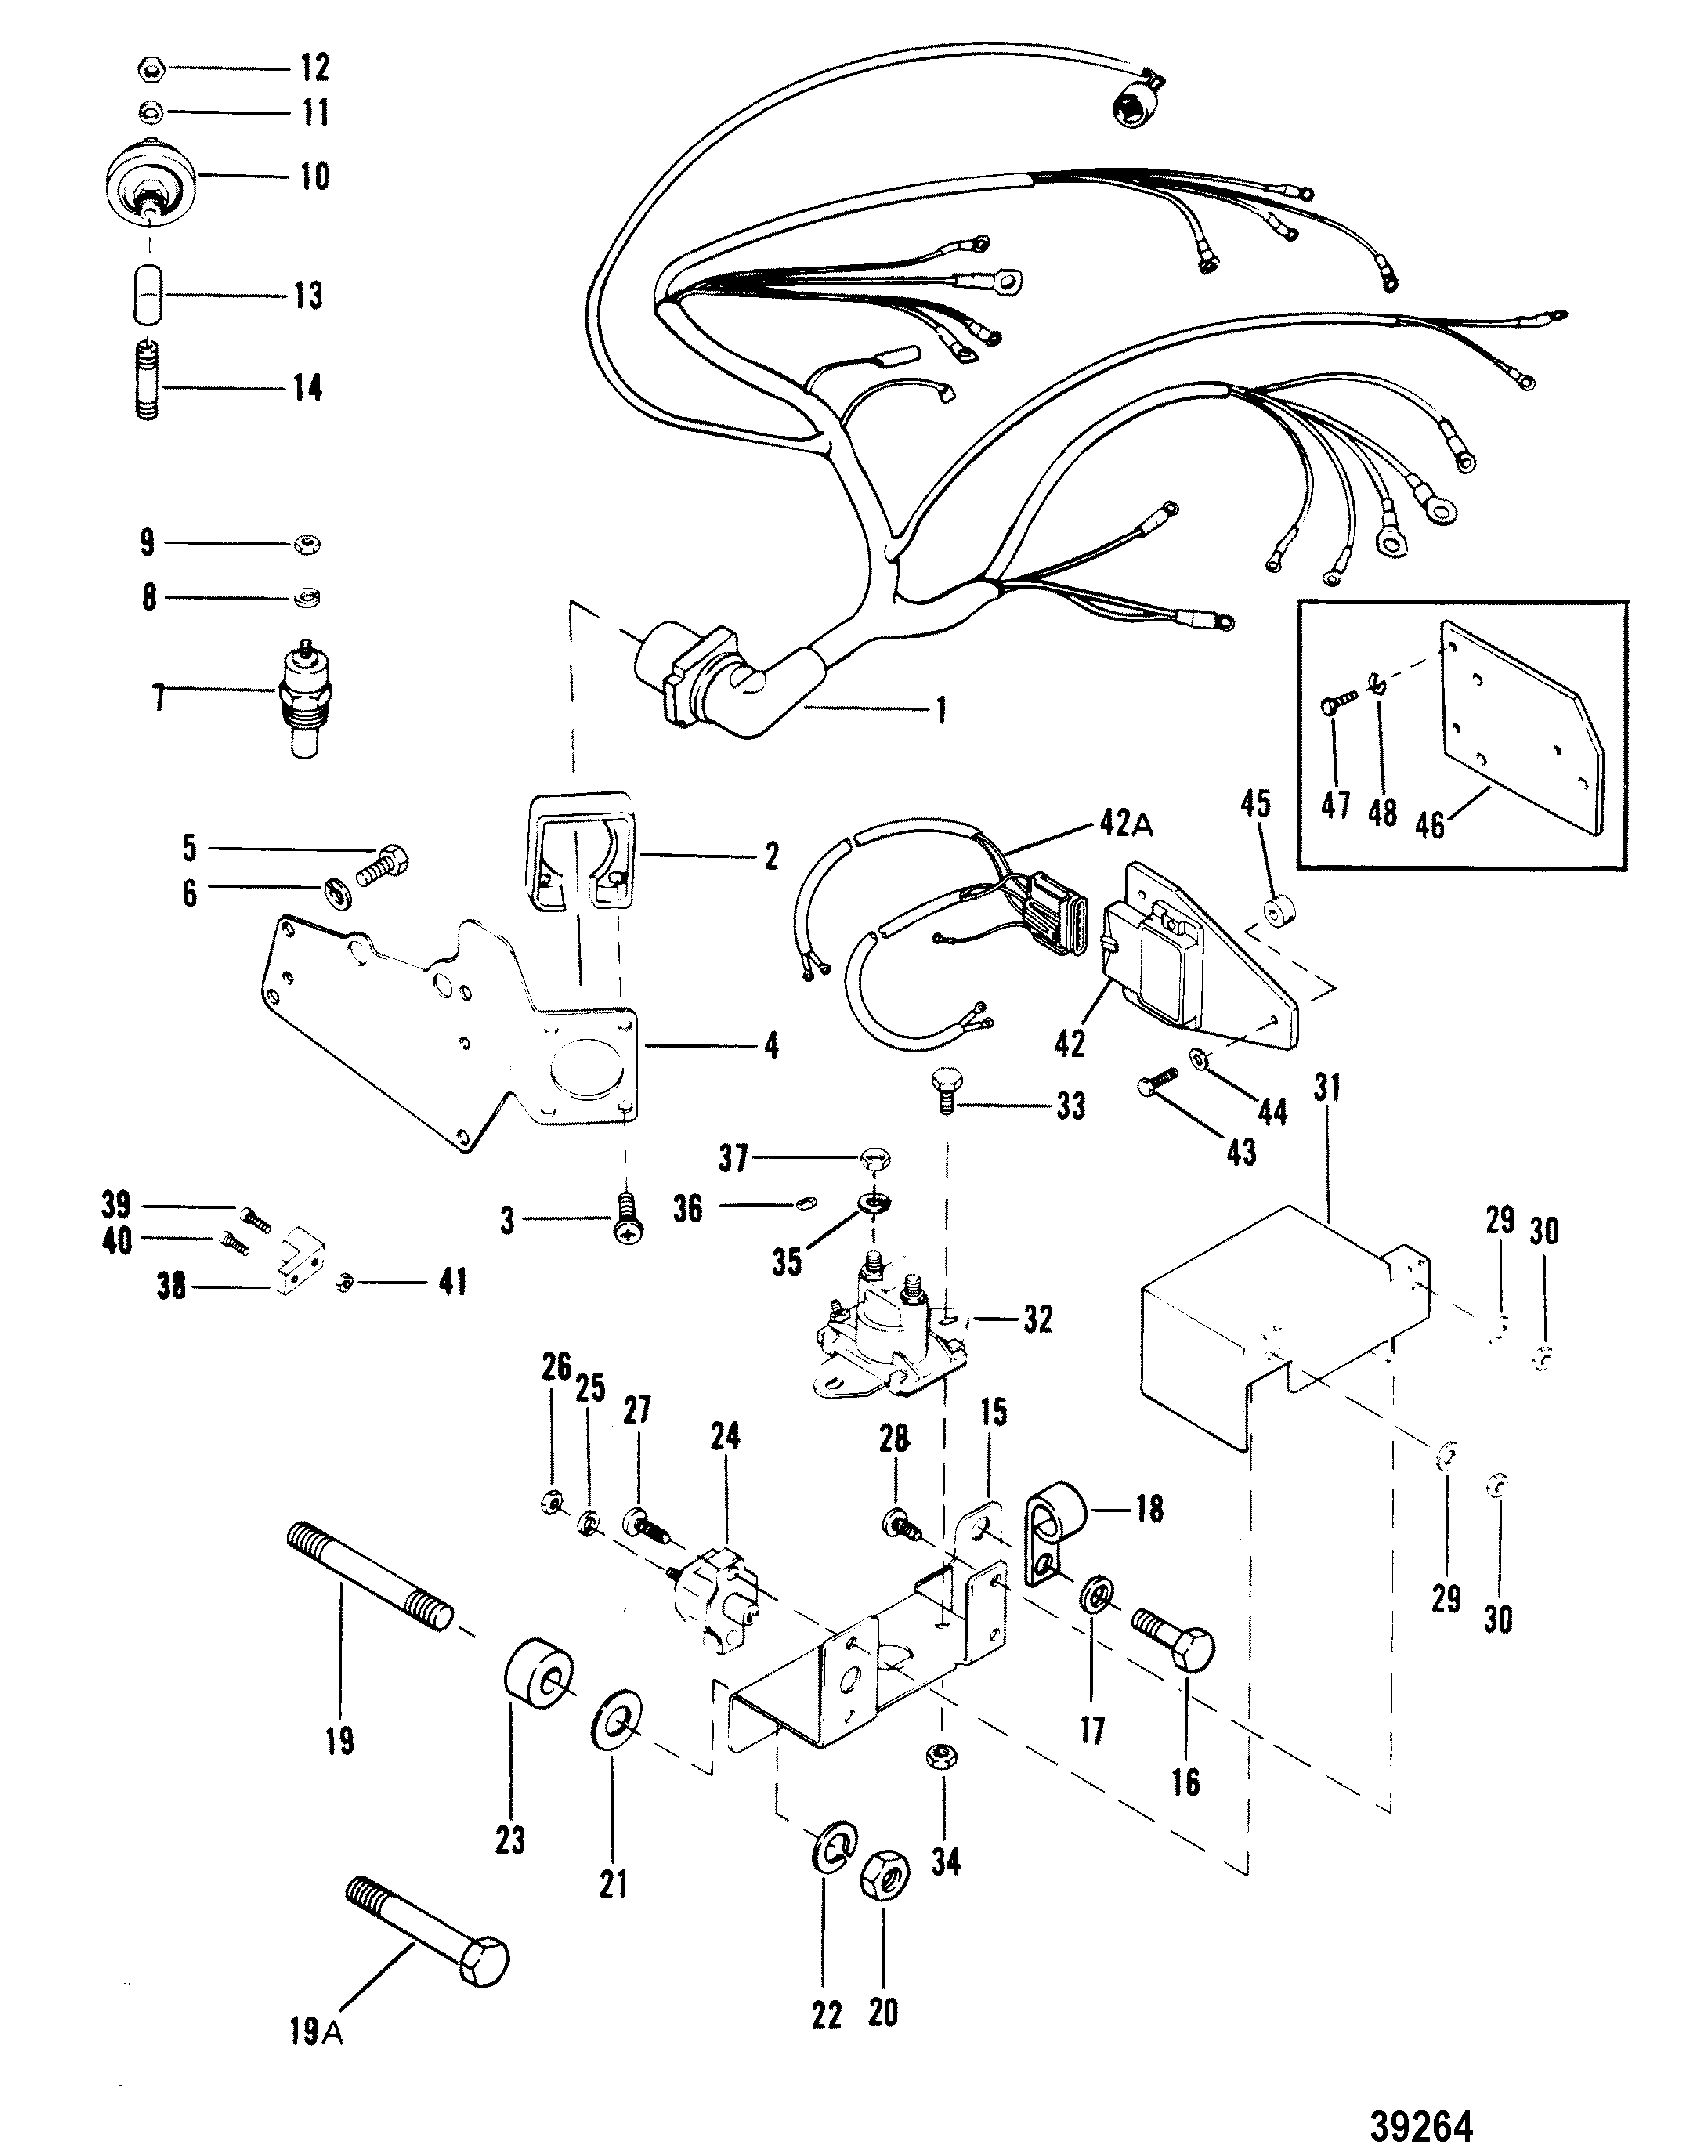 Wiring Harness And Electrical Components For Mercruiser